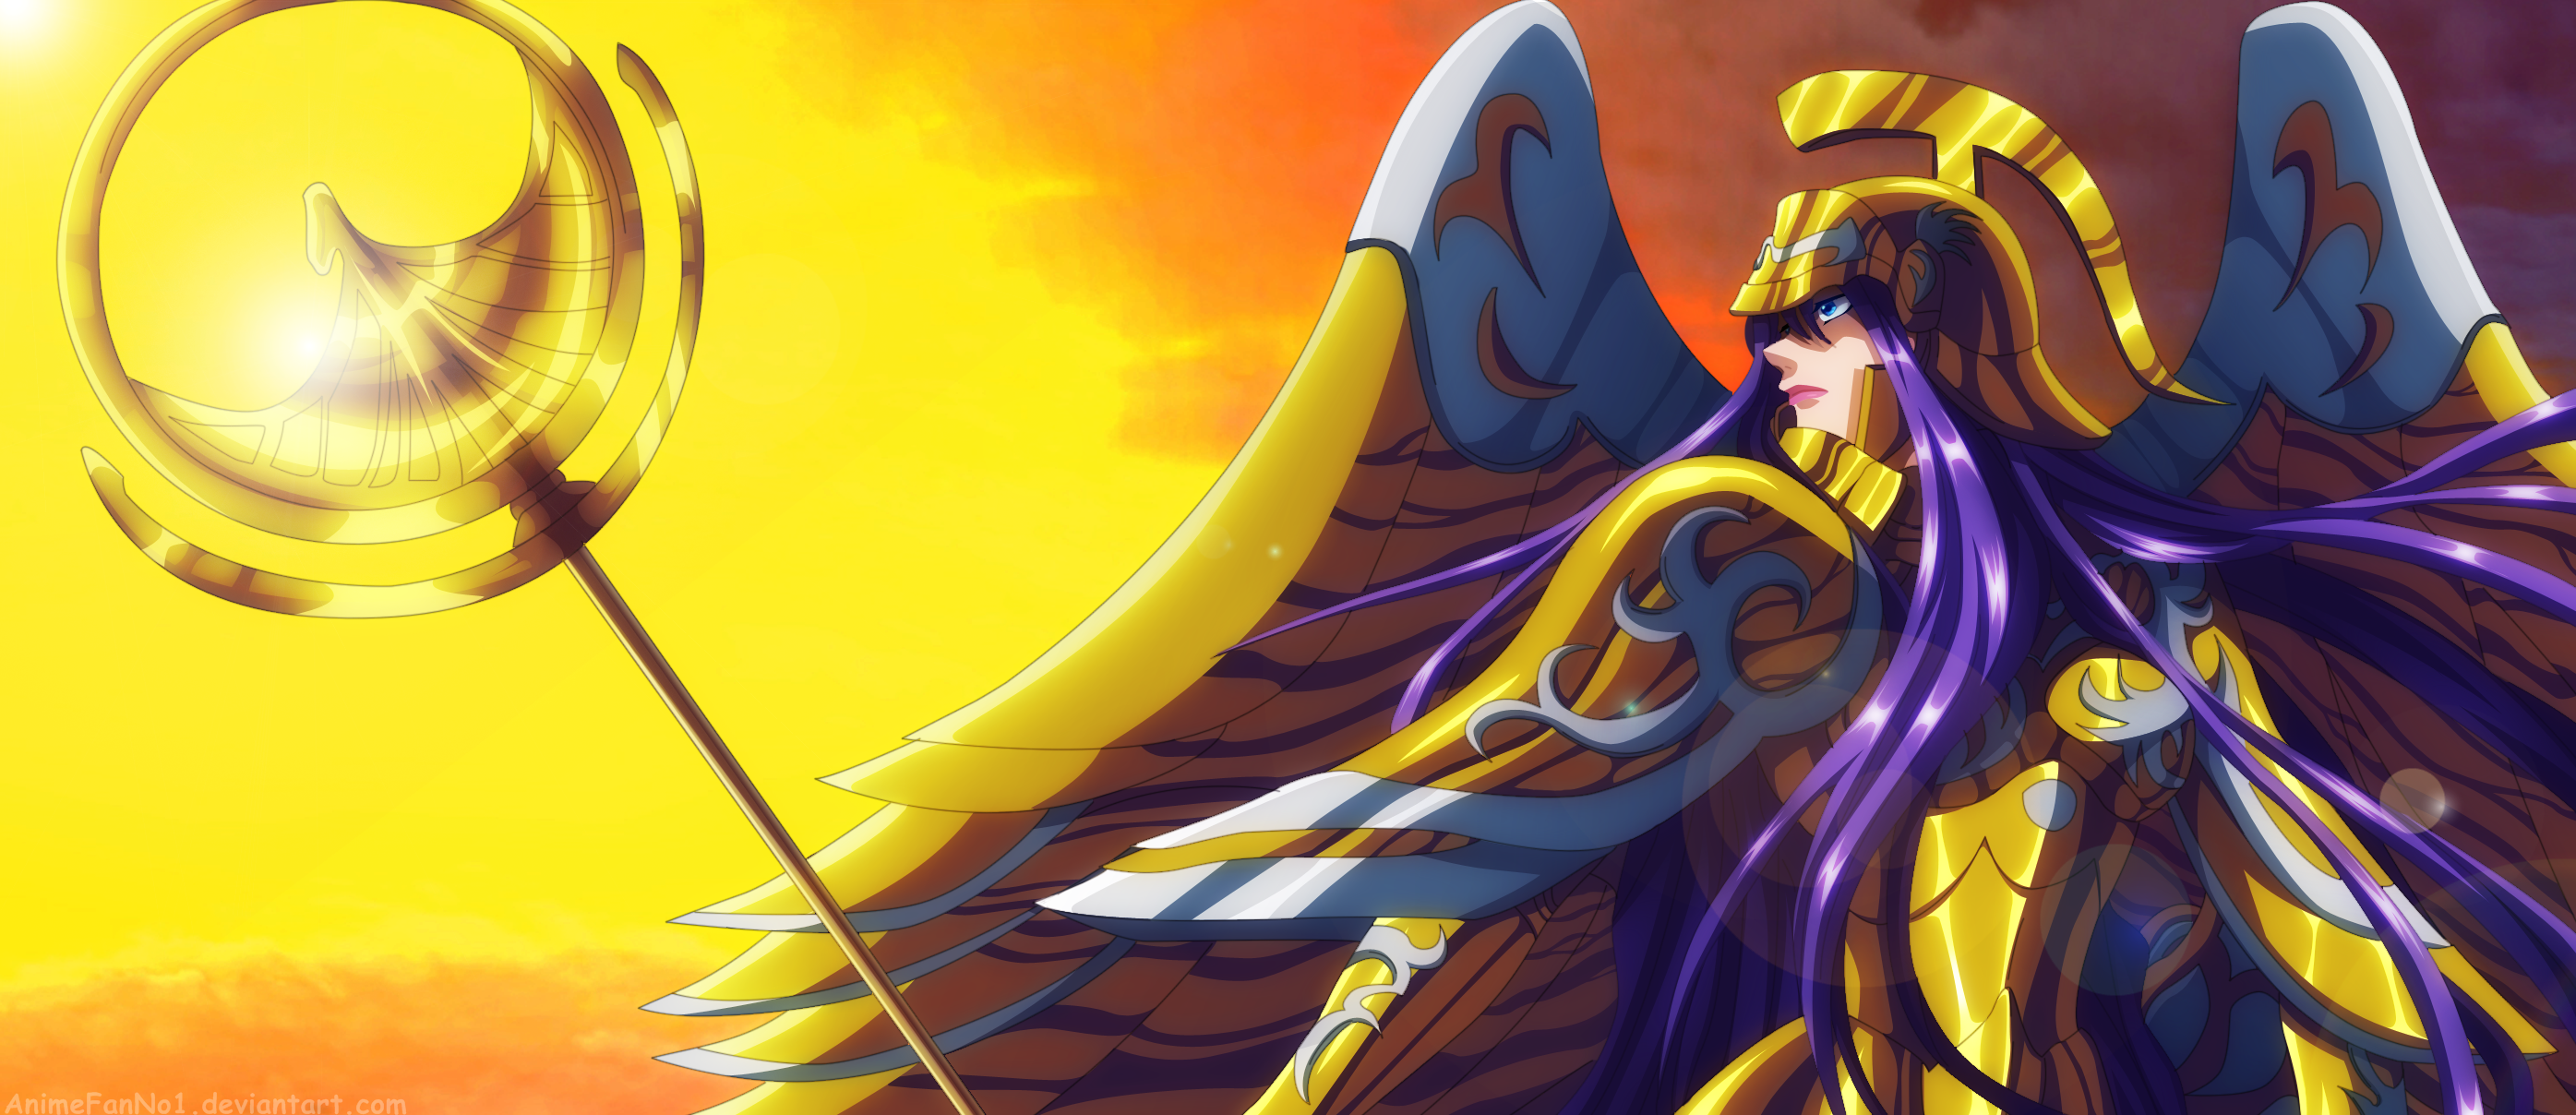 Saint Seiya Lost Canvas HD Wallpaper | Background Image